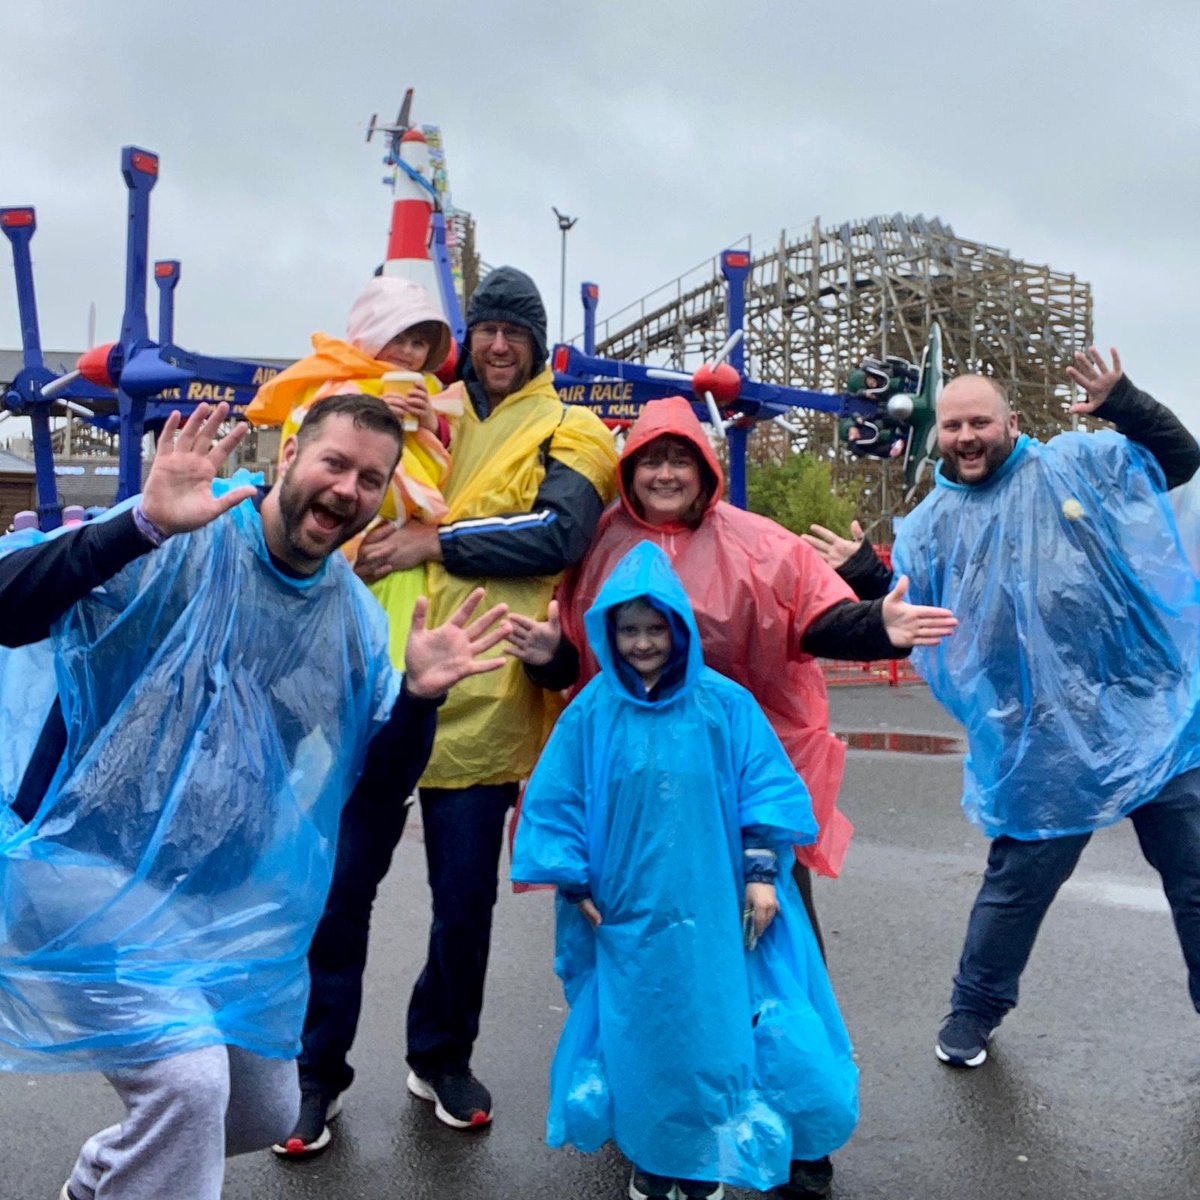 @taytopark The rain didn't hamper us last June on our trip to Tayto park #rainonme #ponchoready #taytopark @tinydavyq @quinlivan 💚